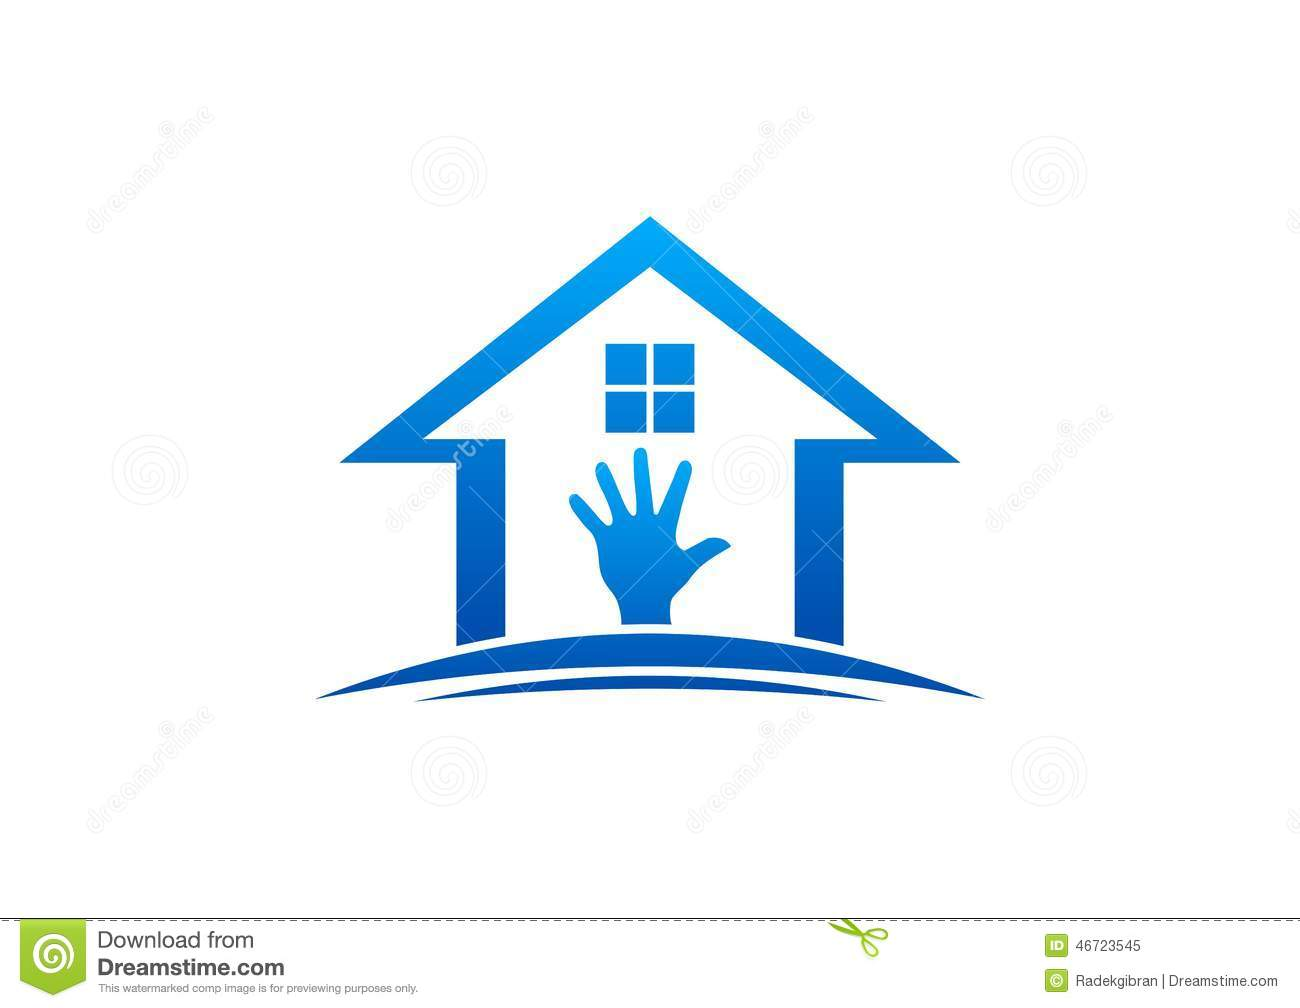 house-hand-logo-home-work-interior-exterior-home-care-furniture-design-vector-workdesign-46723545.jpg